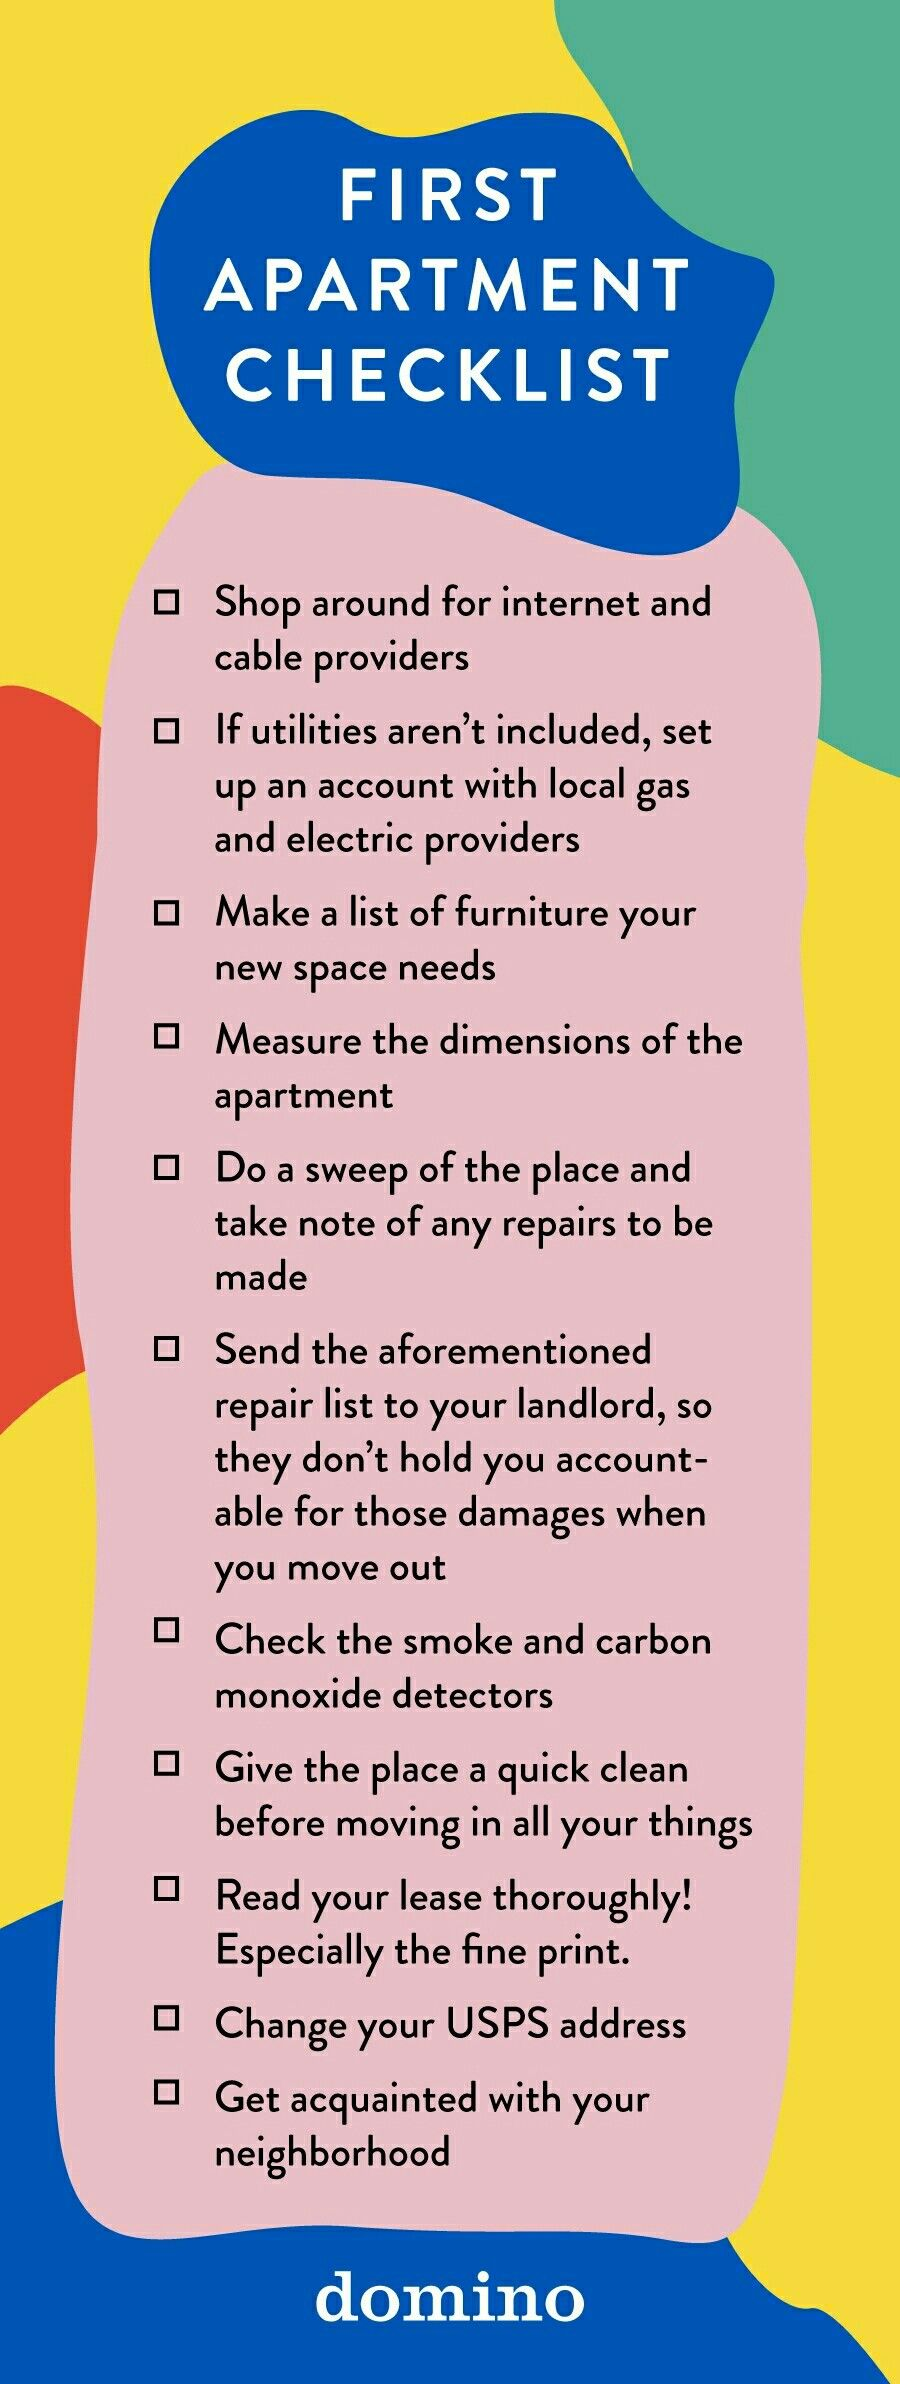 First Apartment Checklist - What To Know Before Moving In ...